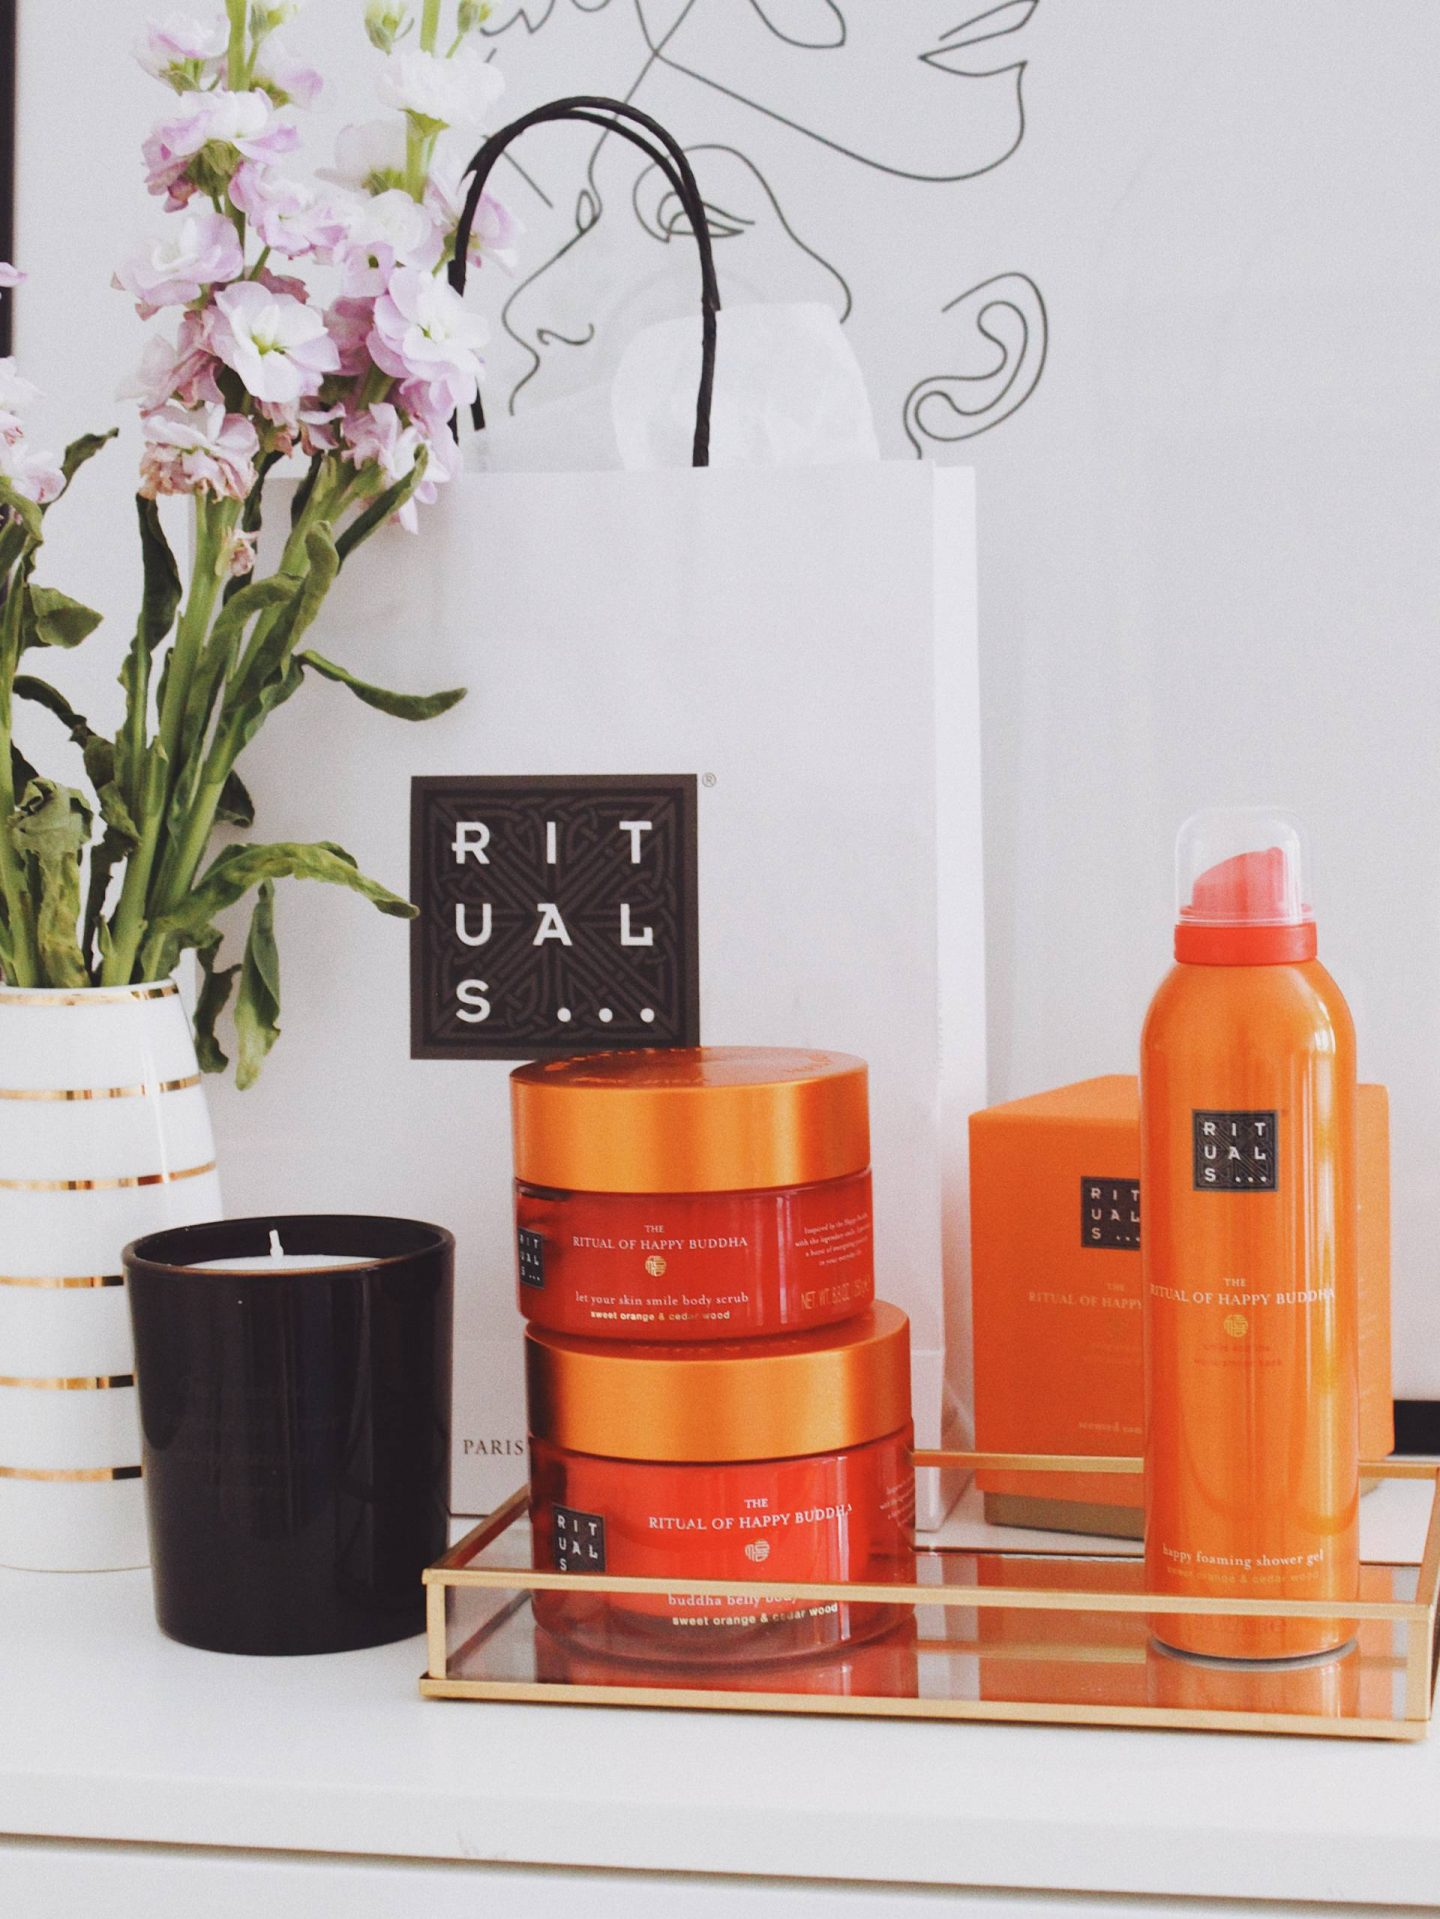 Rituals body care products